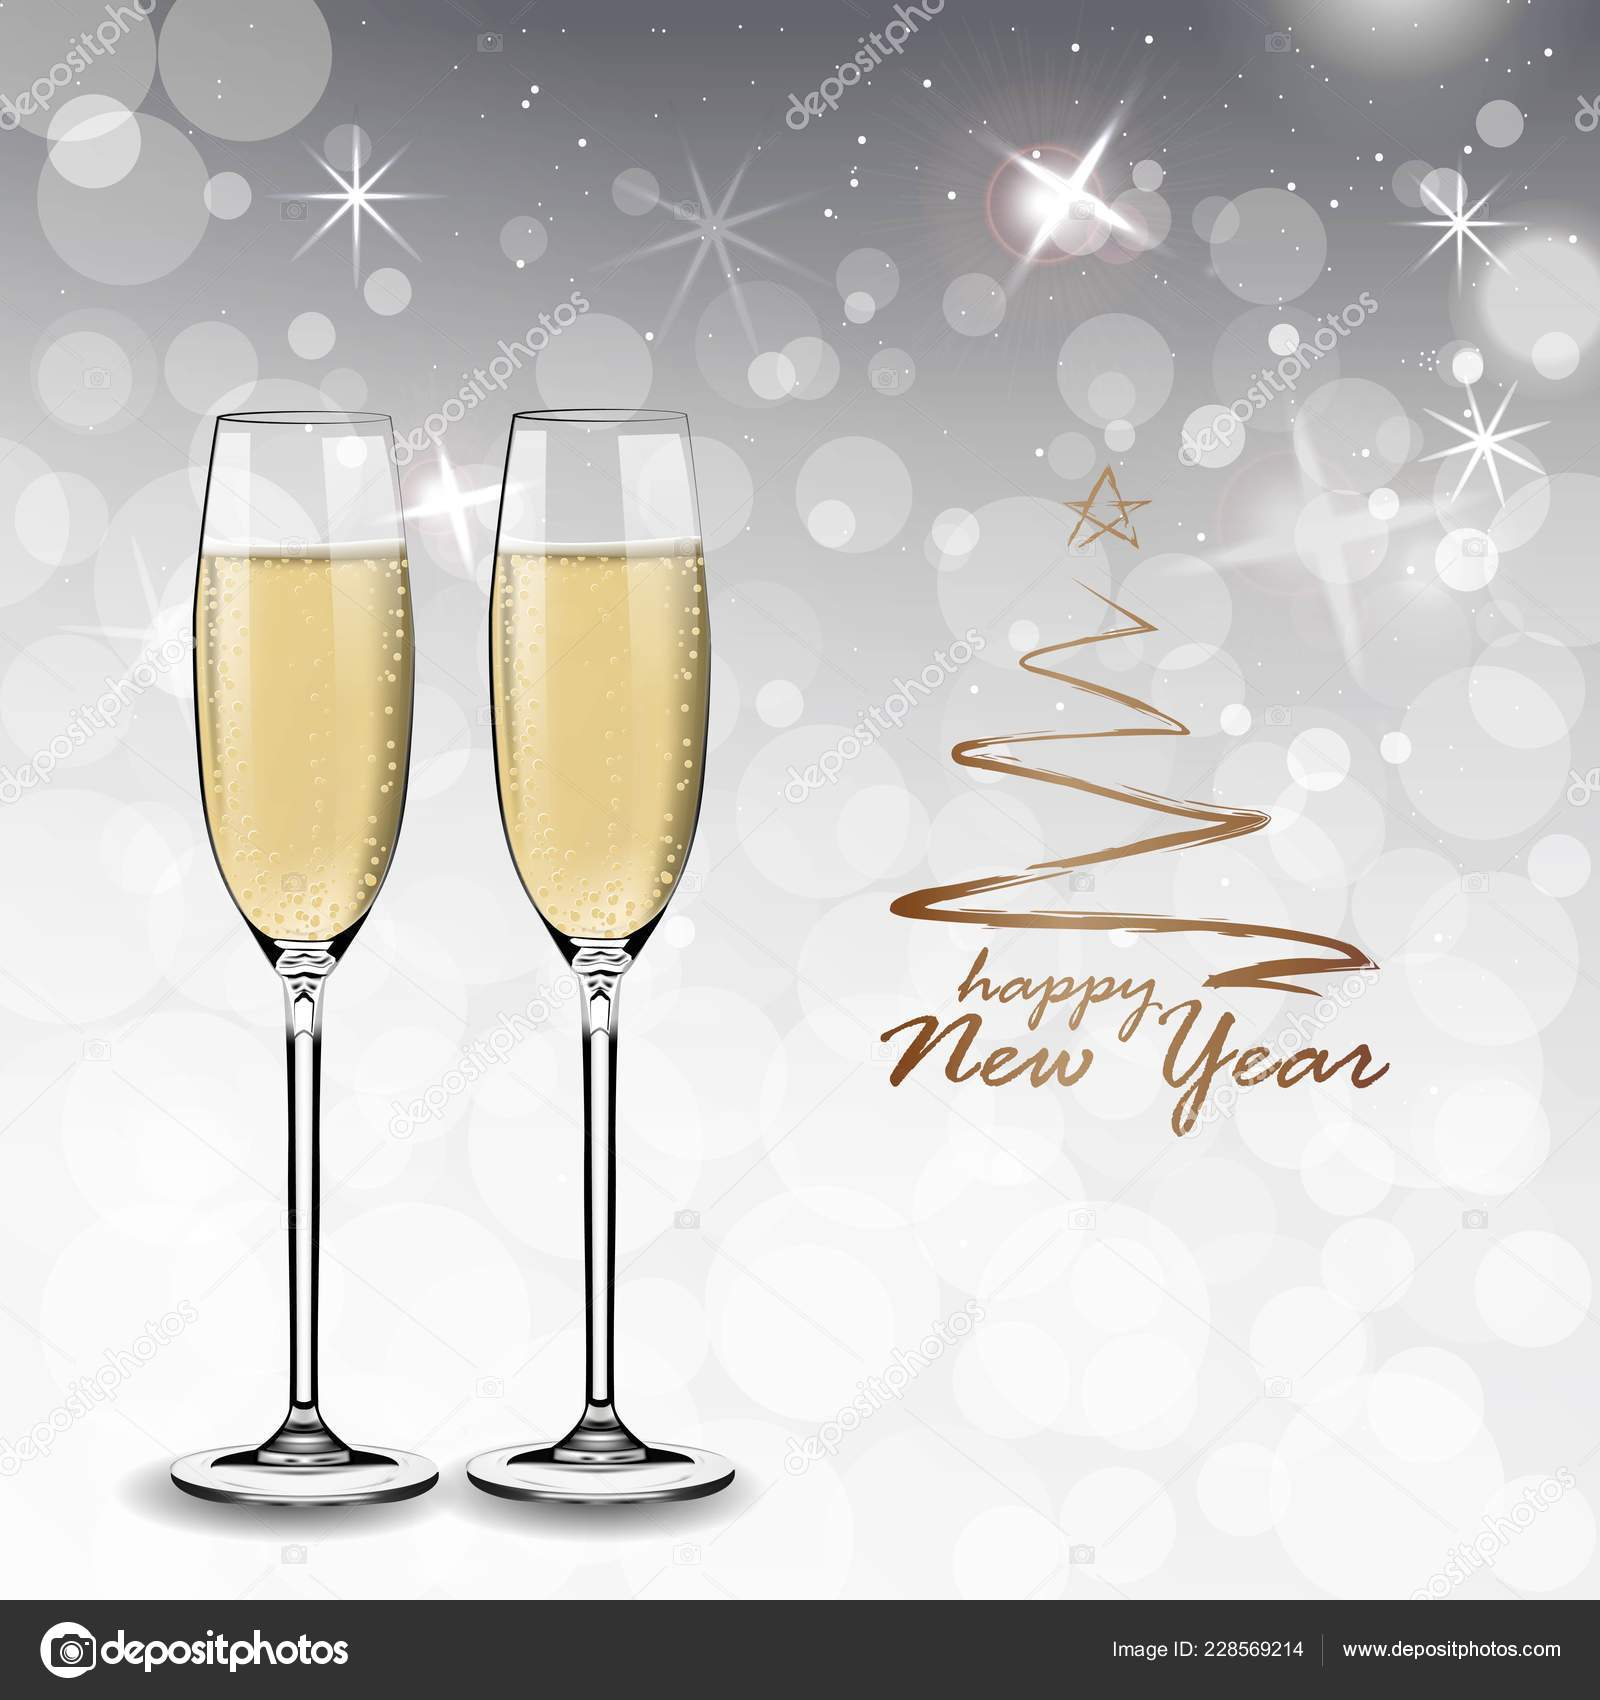 vector happy new year with toasting glasses of champagne on white snow background in realistic stylegreeting card or party invitation with golden christmas